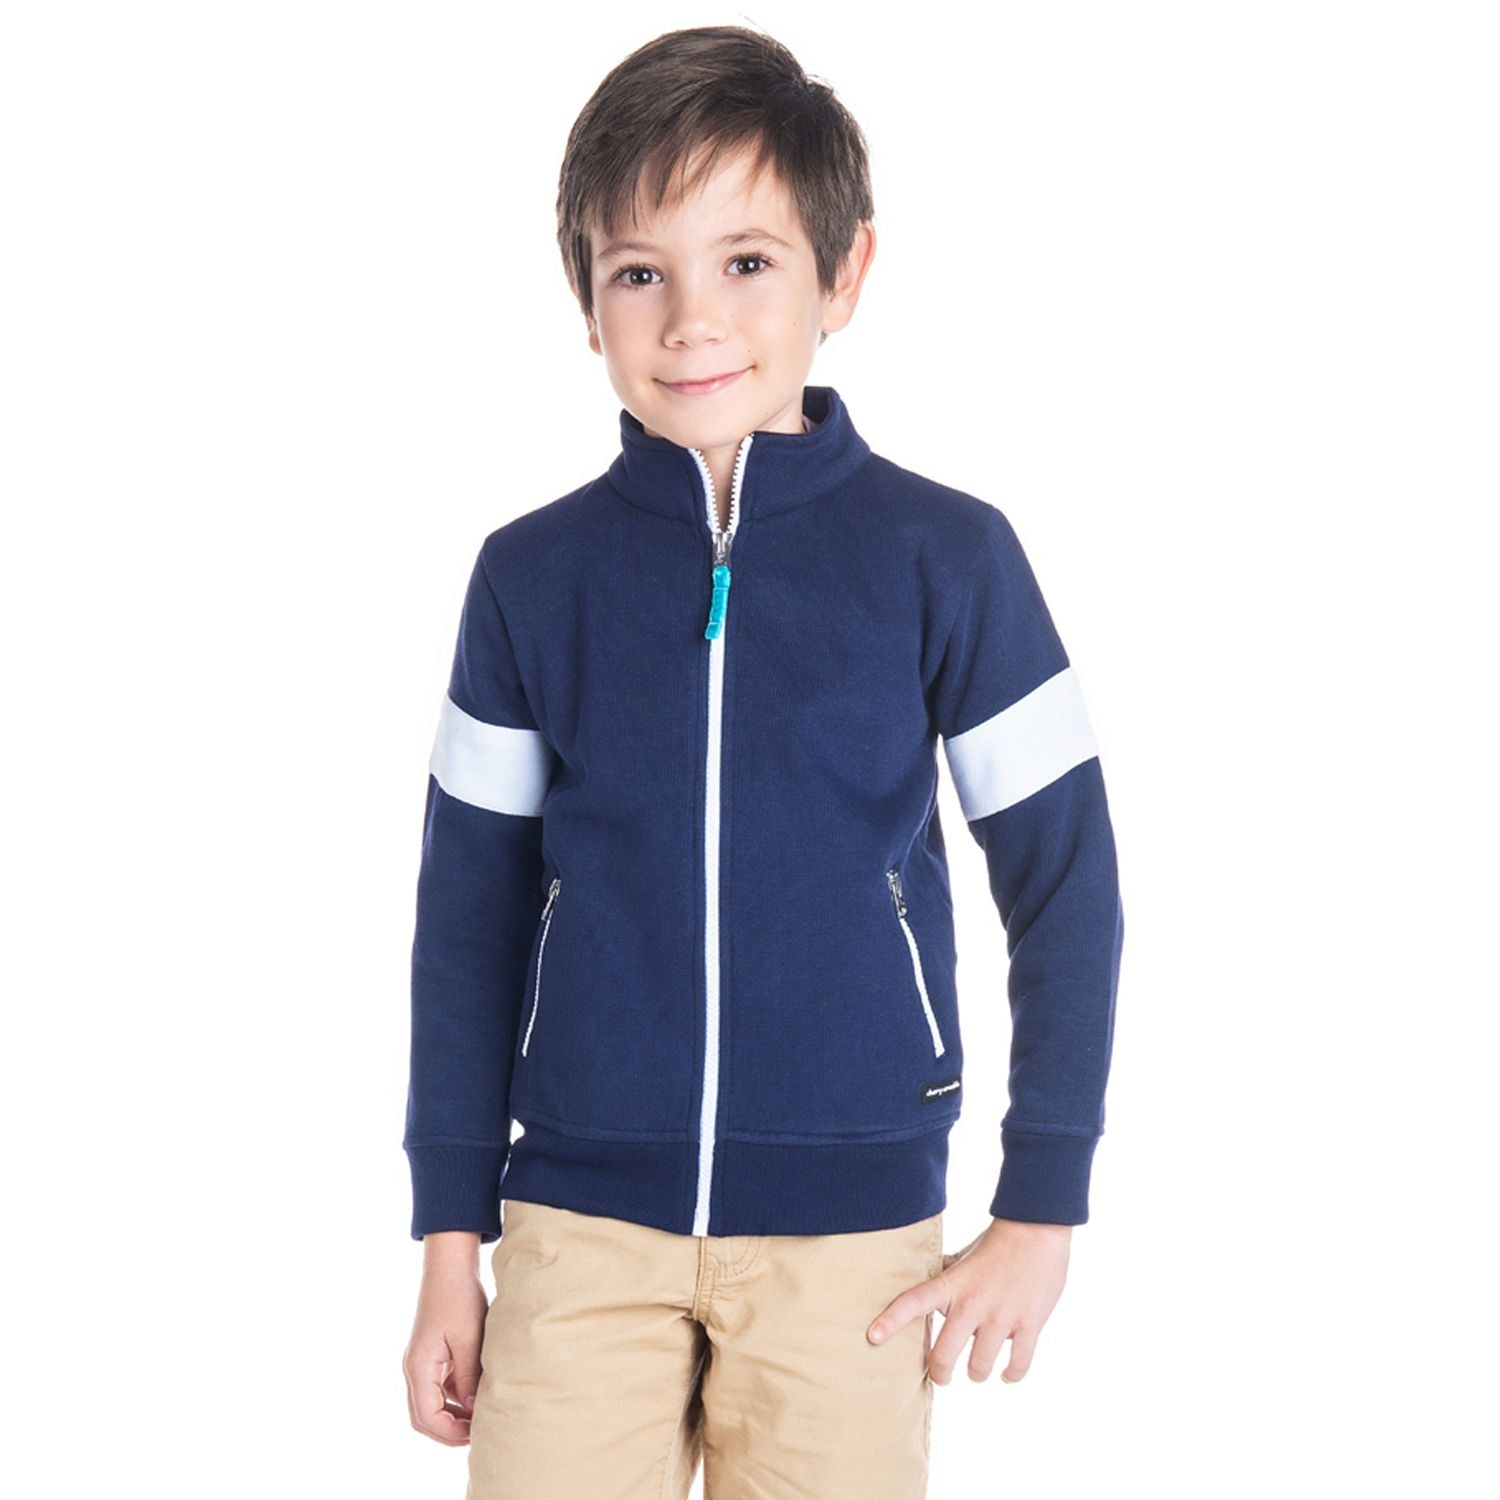 Band Sweatshirt for Boys